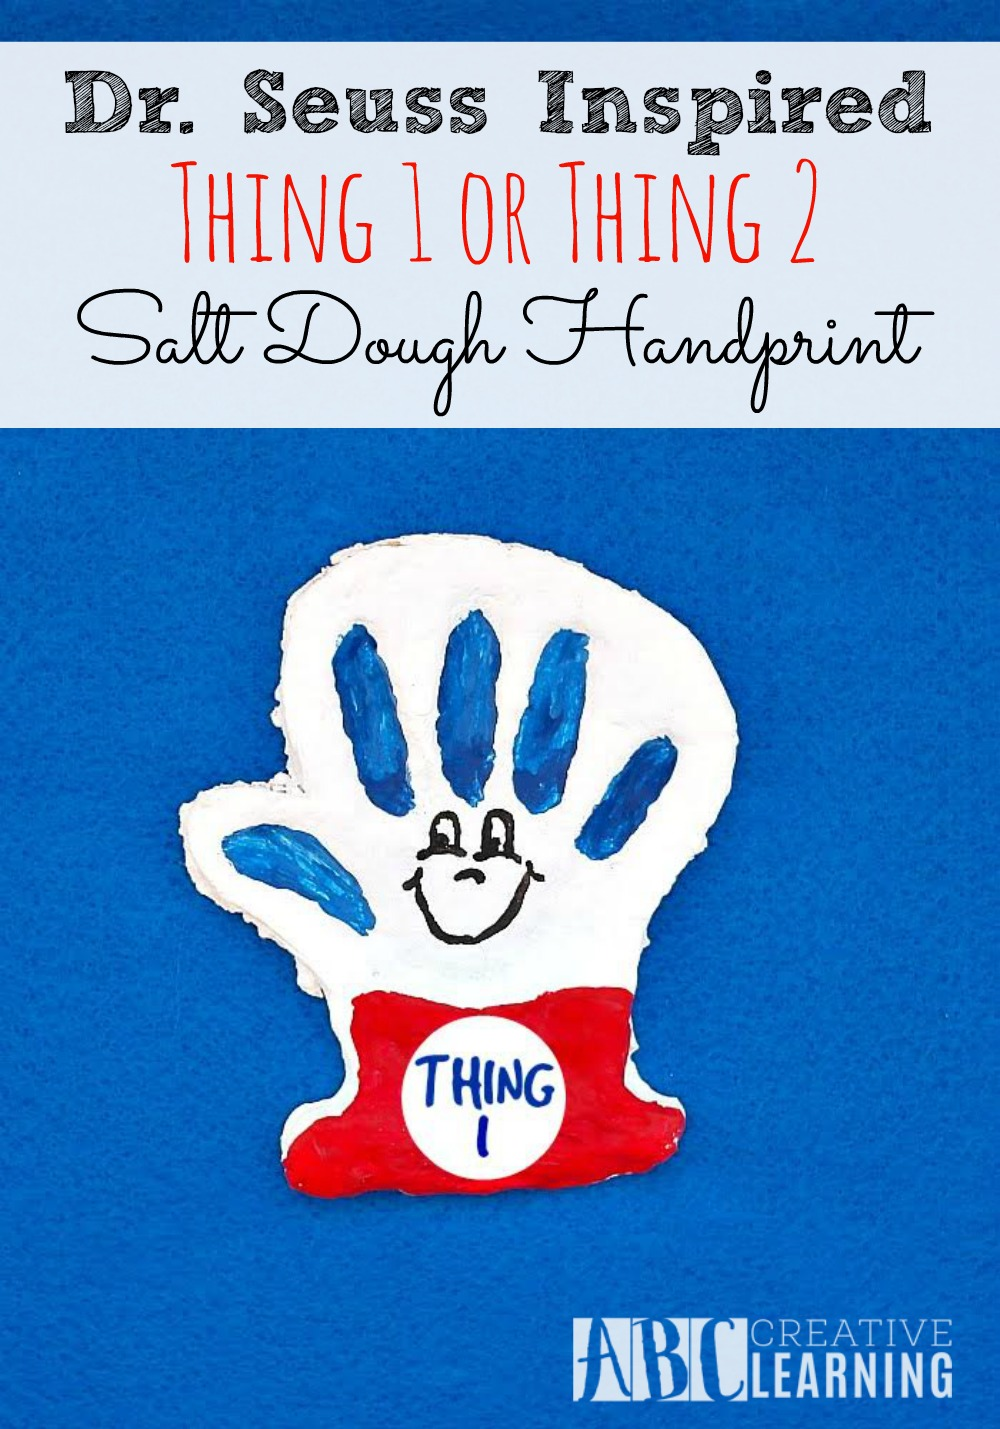 Dr. Seuss Inspired Salt Dough Handprint